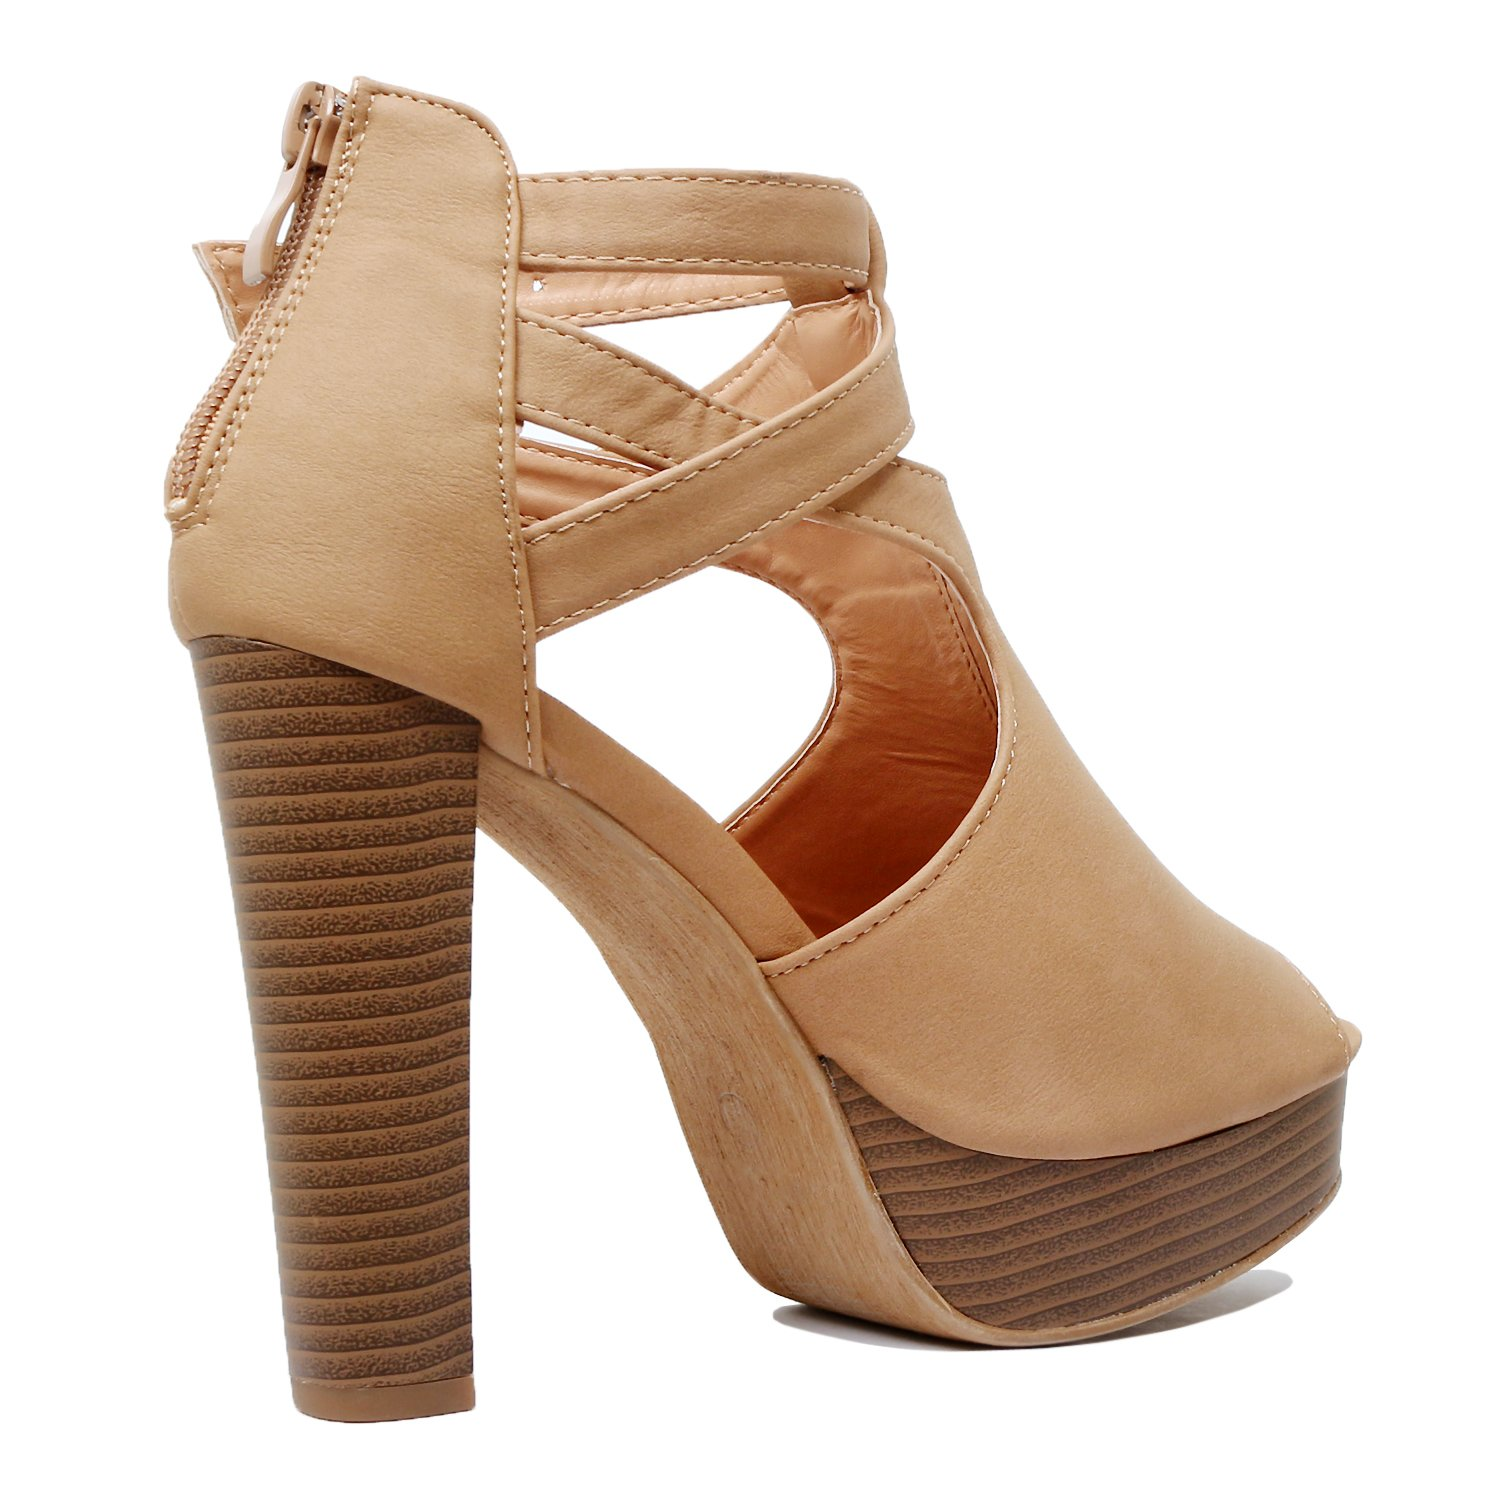 12d5560f0cb0f Guilty Shoes Cutout Gladiator Ankle Strap Platform Fashion High Heel Sandals   1540900841-61399  -  16.27